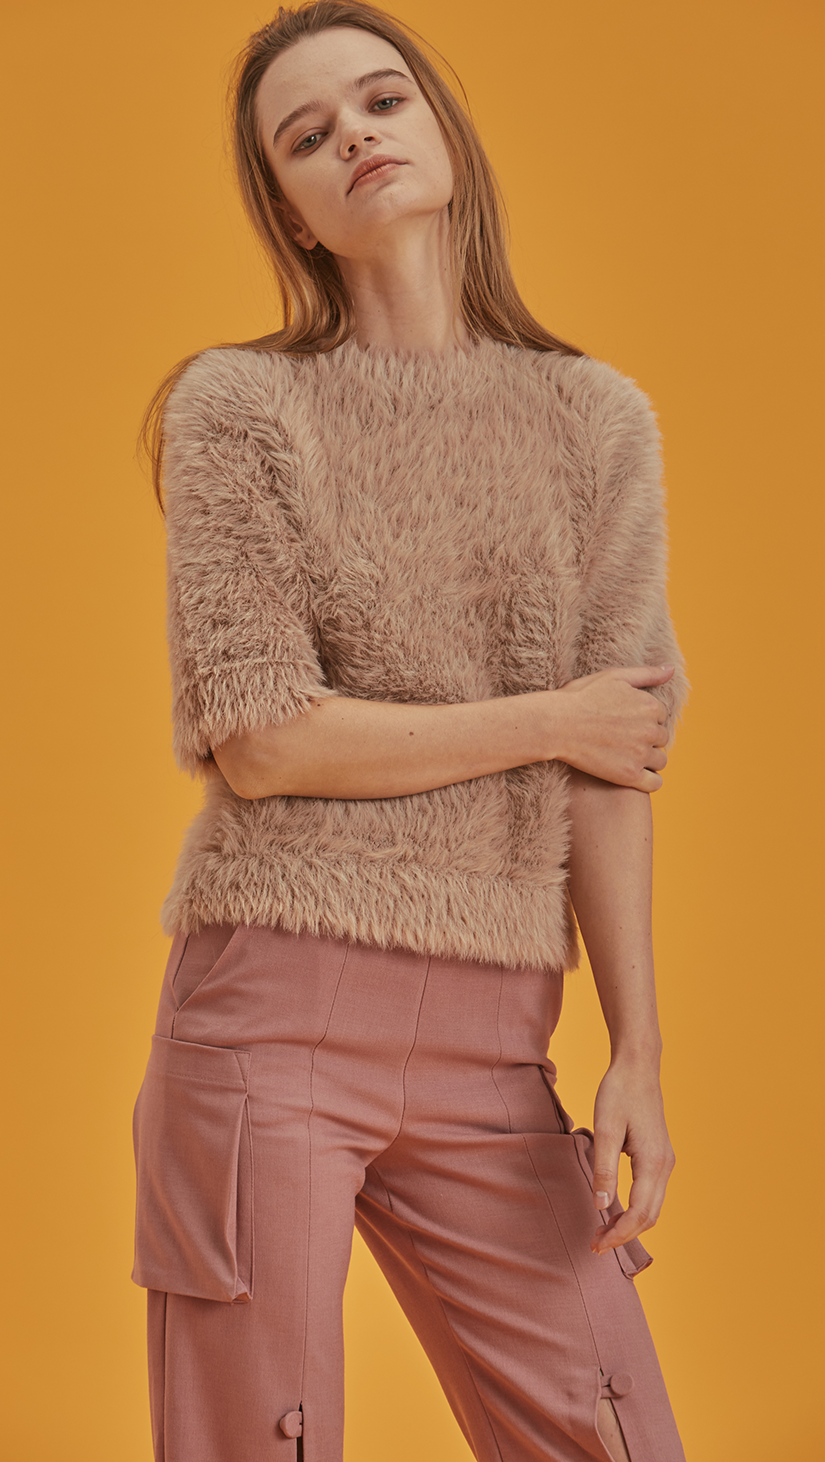 Short sleeved pullover with statement furry in matte pink. Soft feel texture. Furry interior. Pull on.